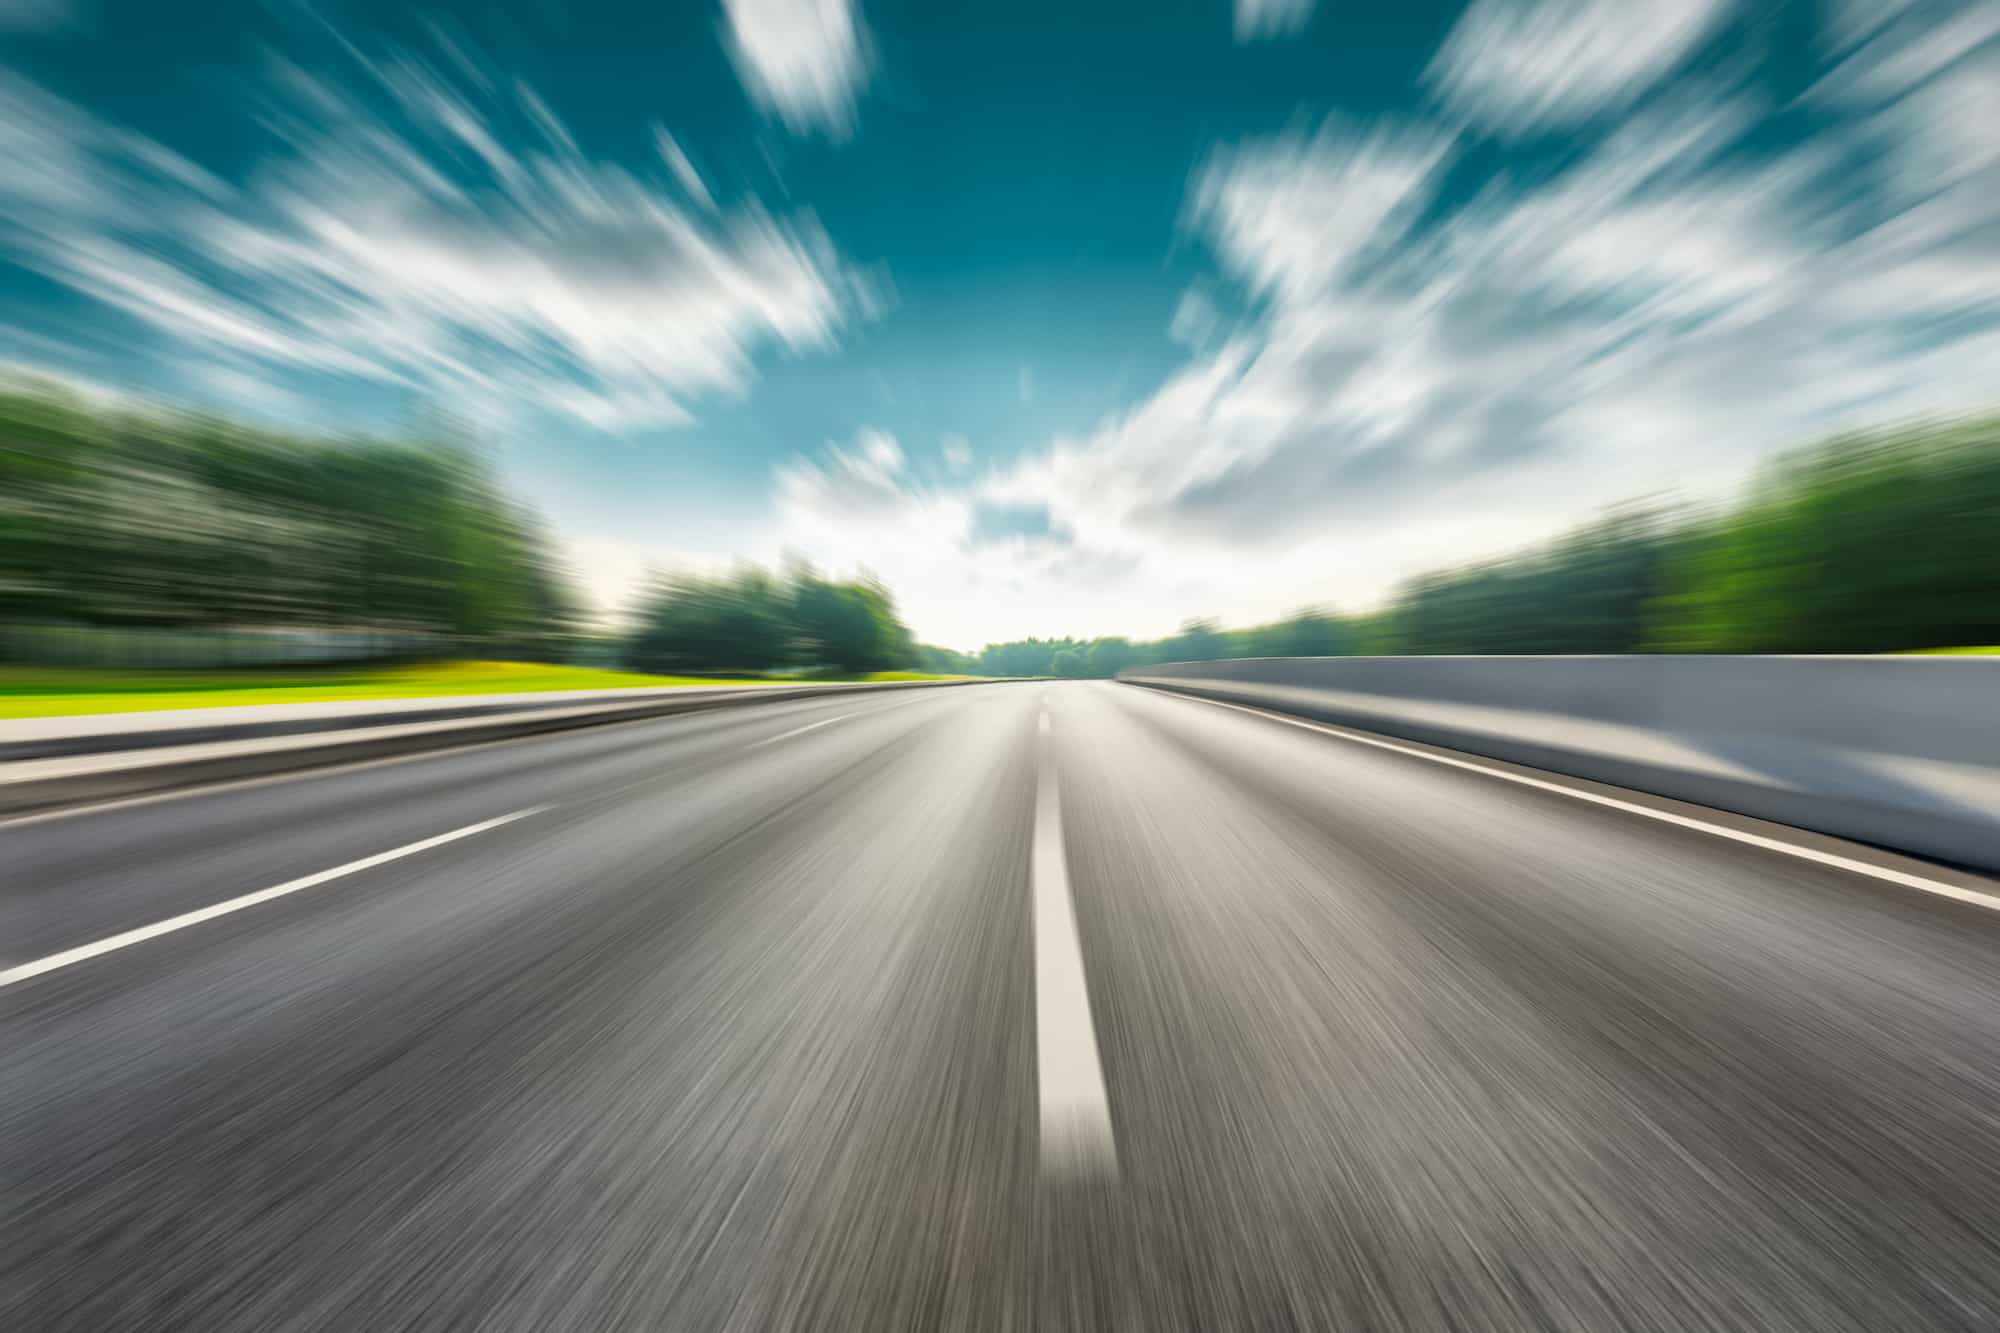 Photo of Road from view of vehicle driving fast